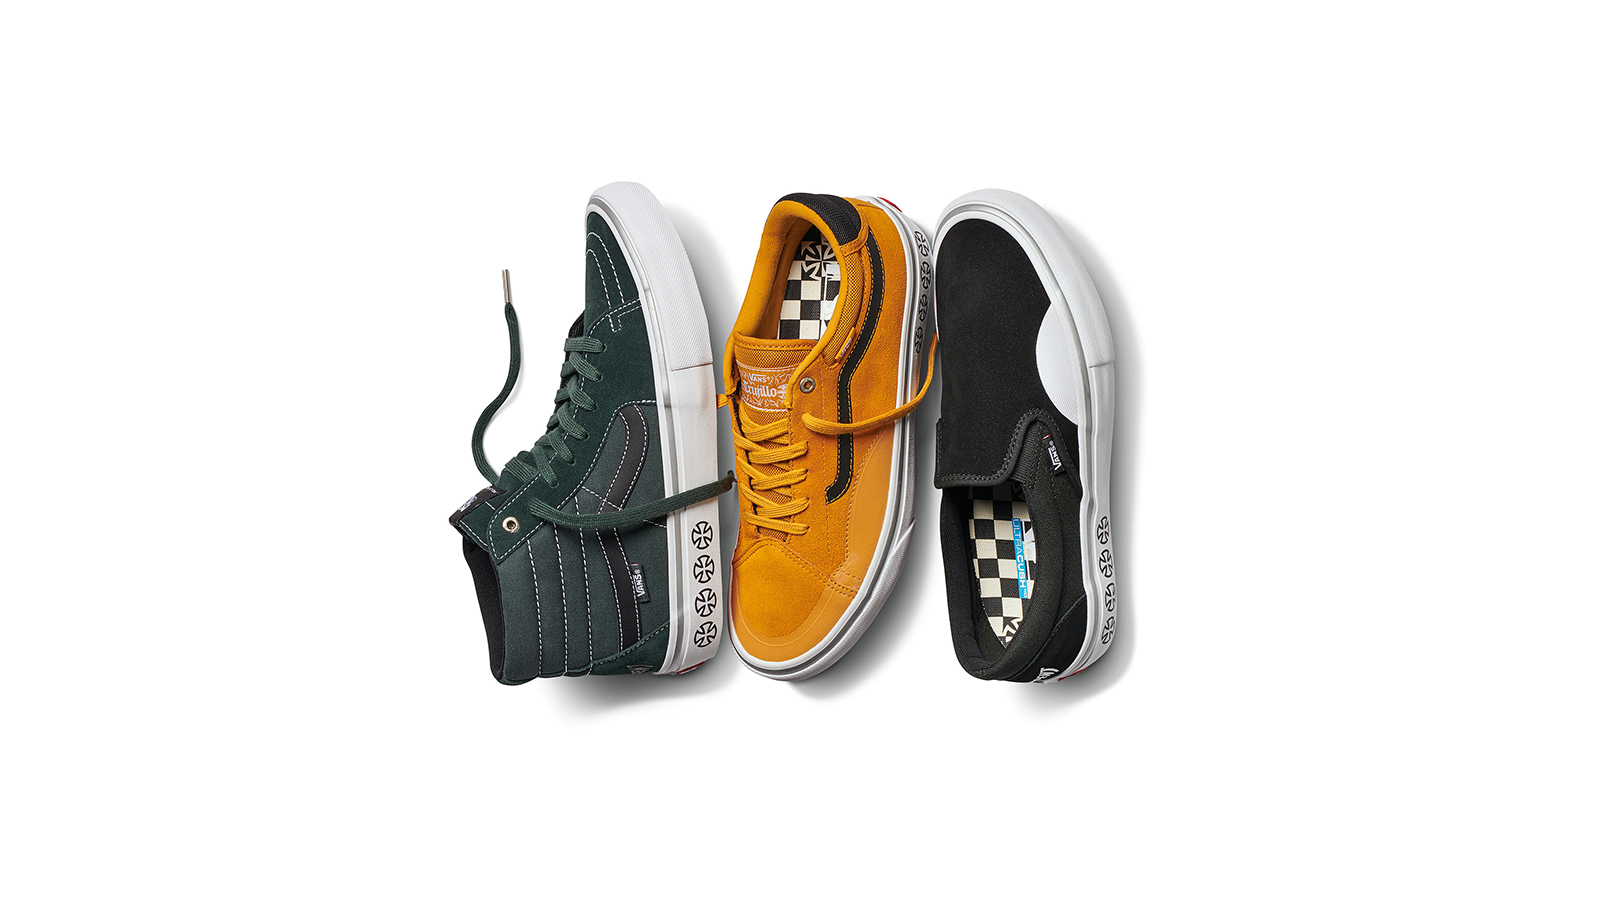 73087826811 Vans X Independent Truck Co. Collaboration - New Product - Boardsport SOURCE